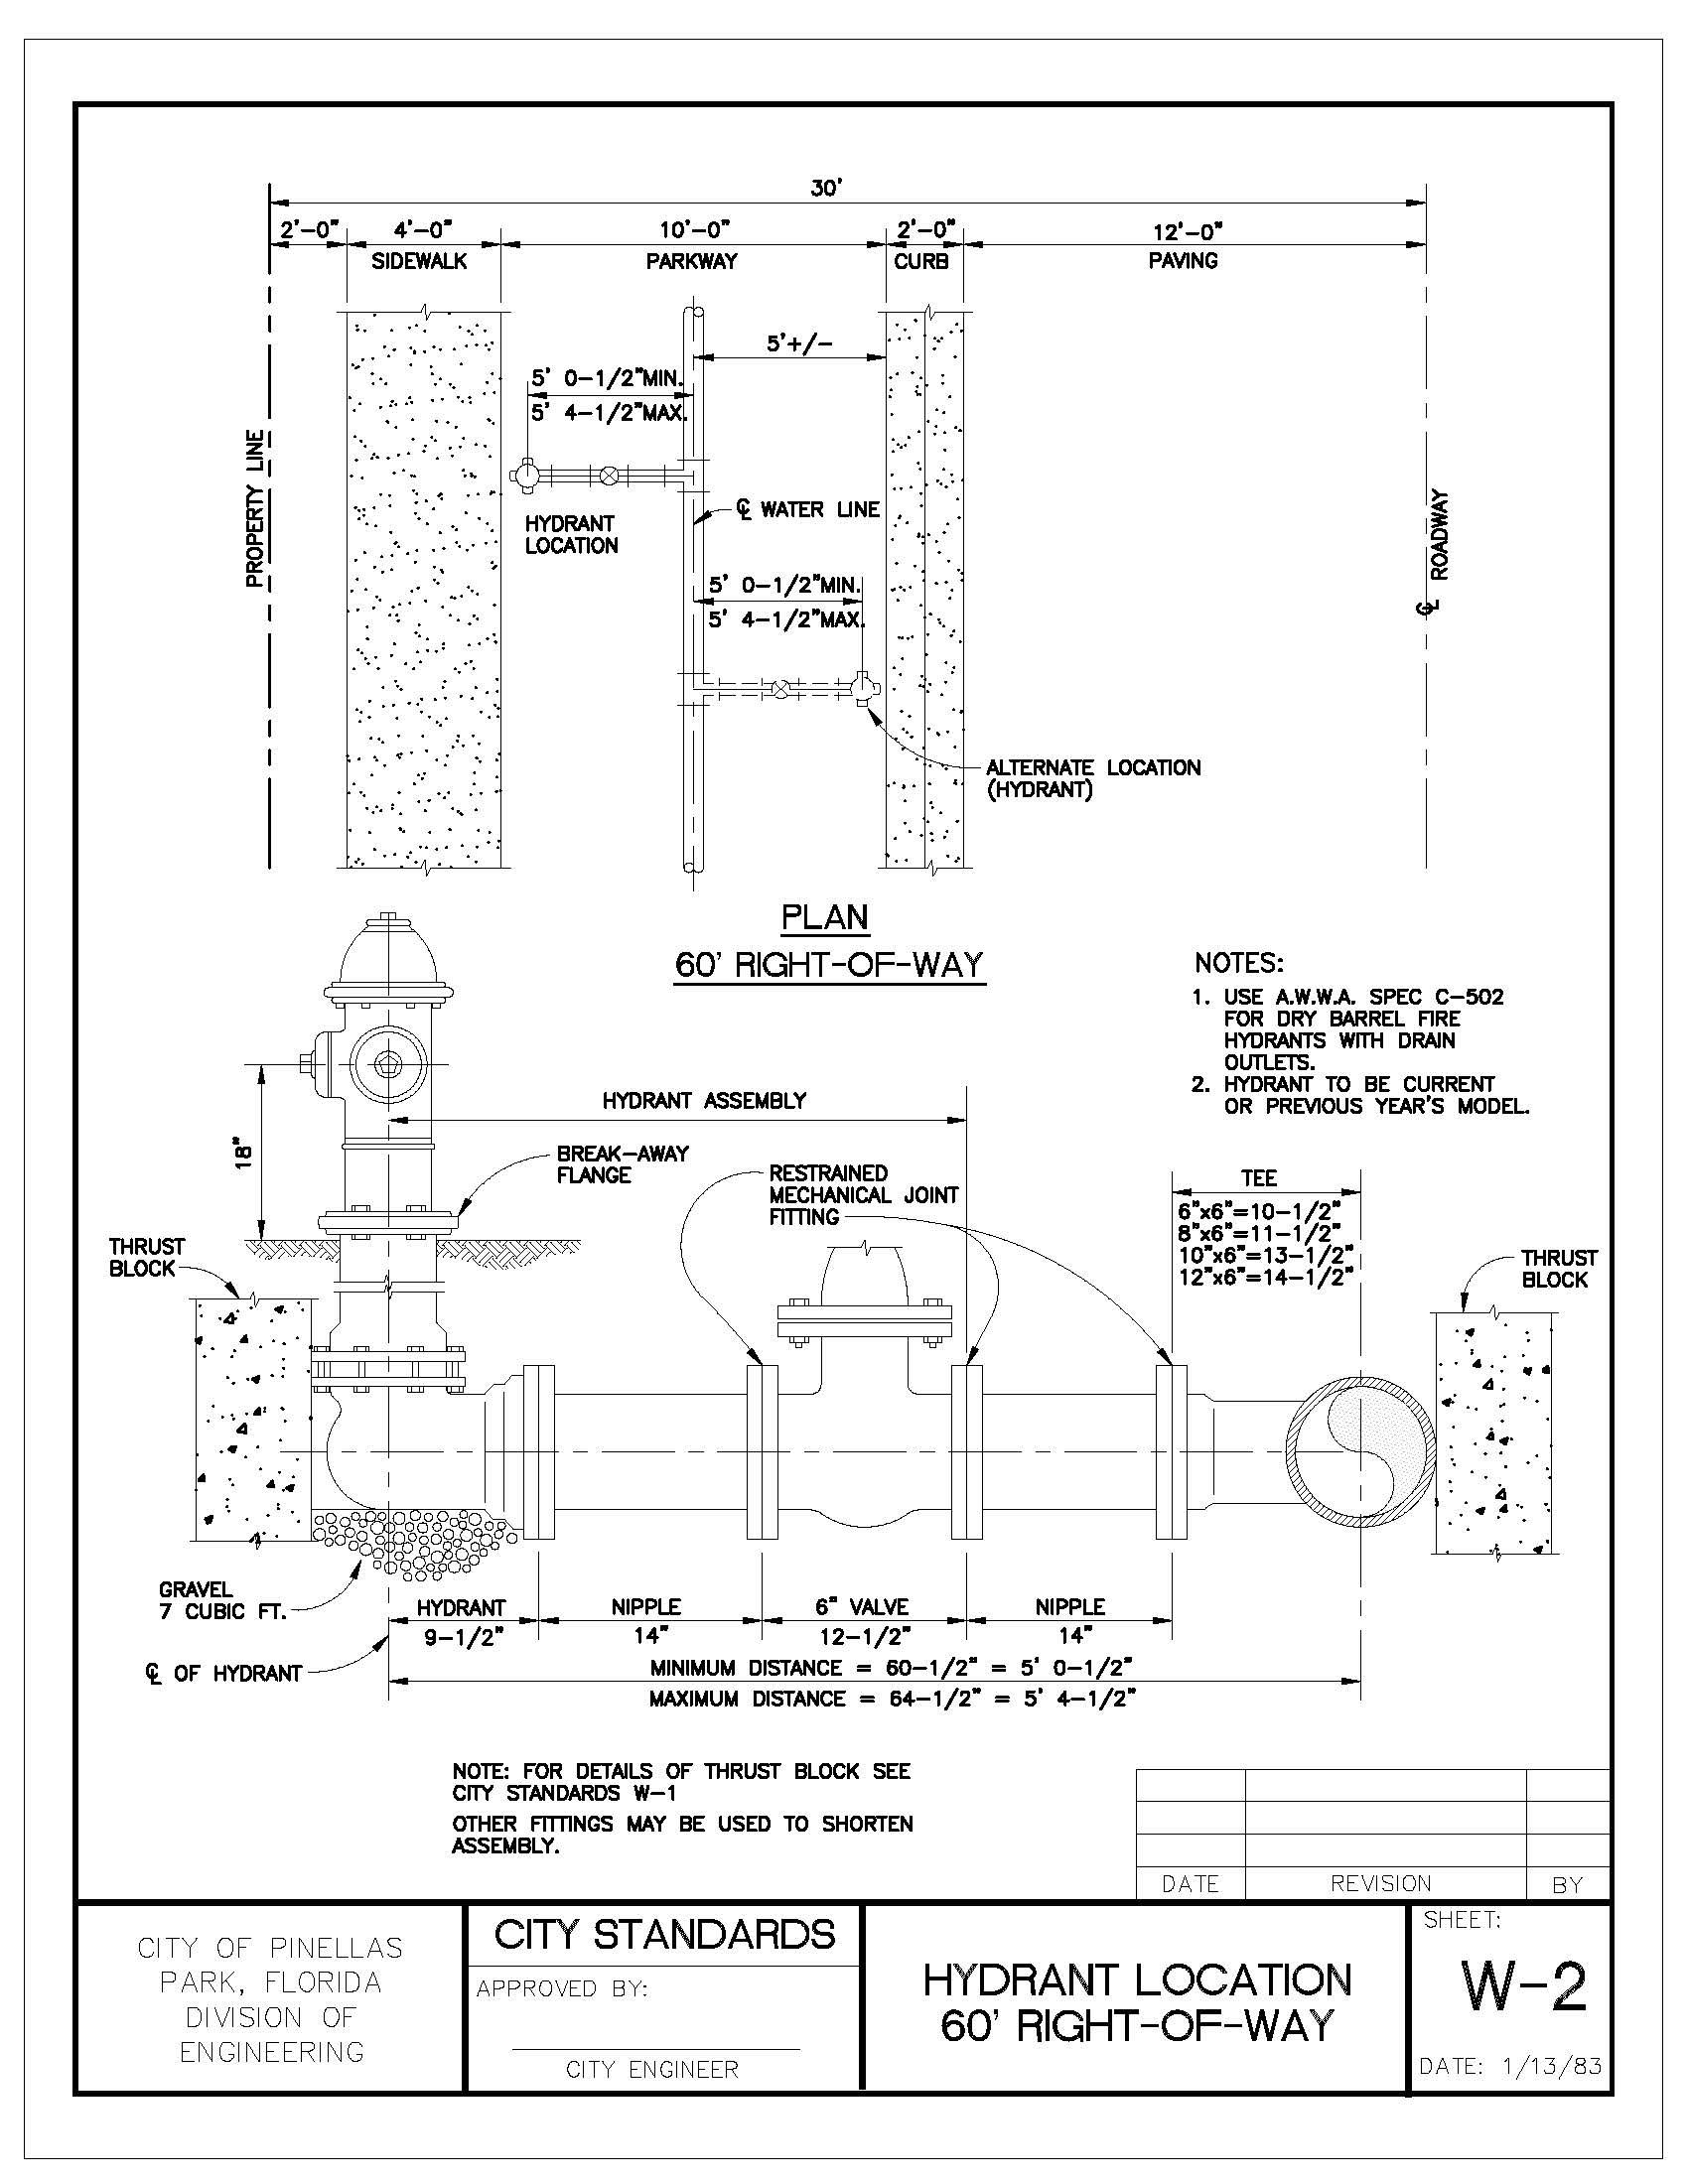 Engineering Manual v5_201908121127291138_Page_076 hydrant location 60 degree right of way